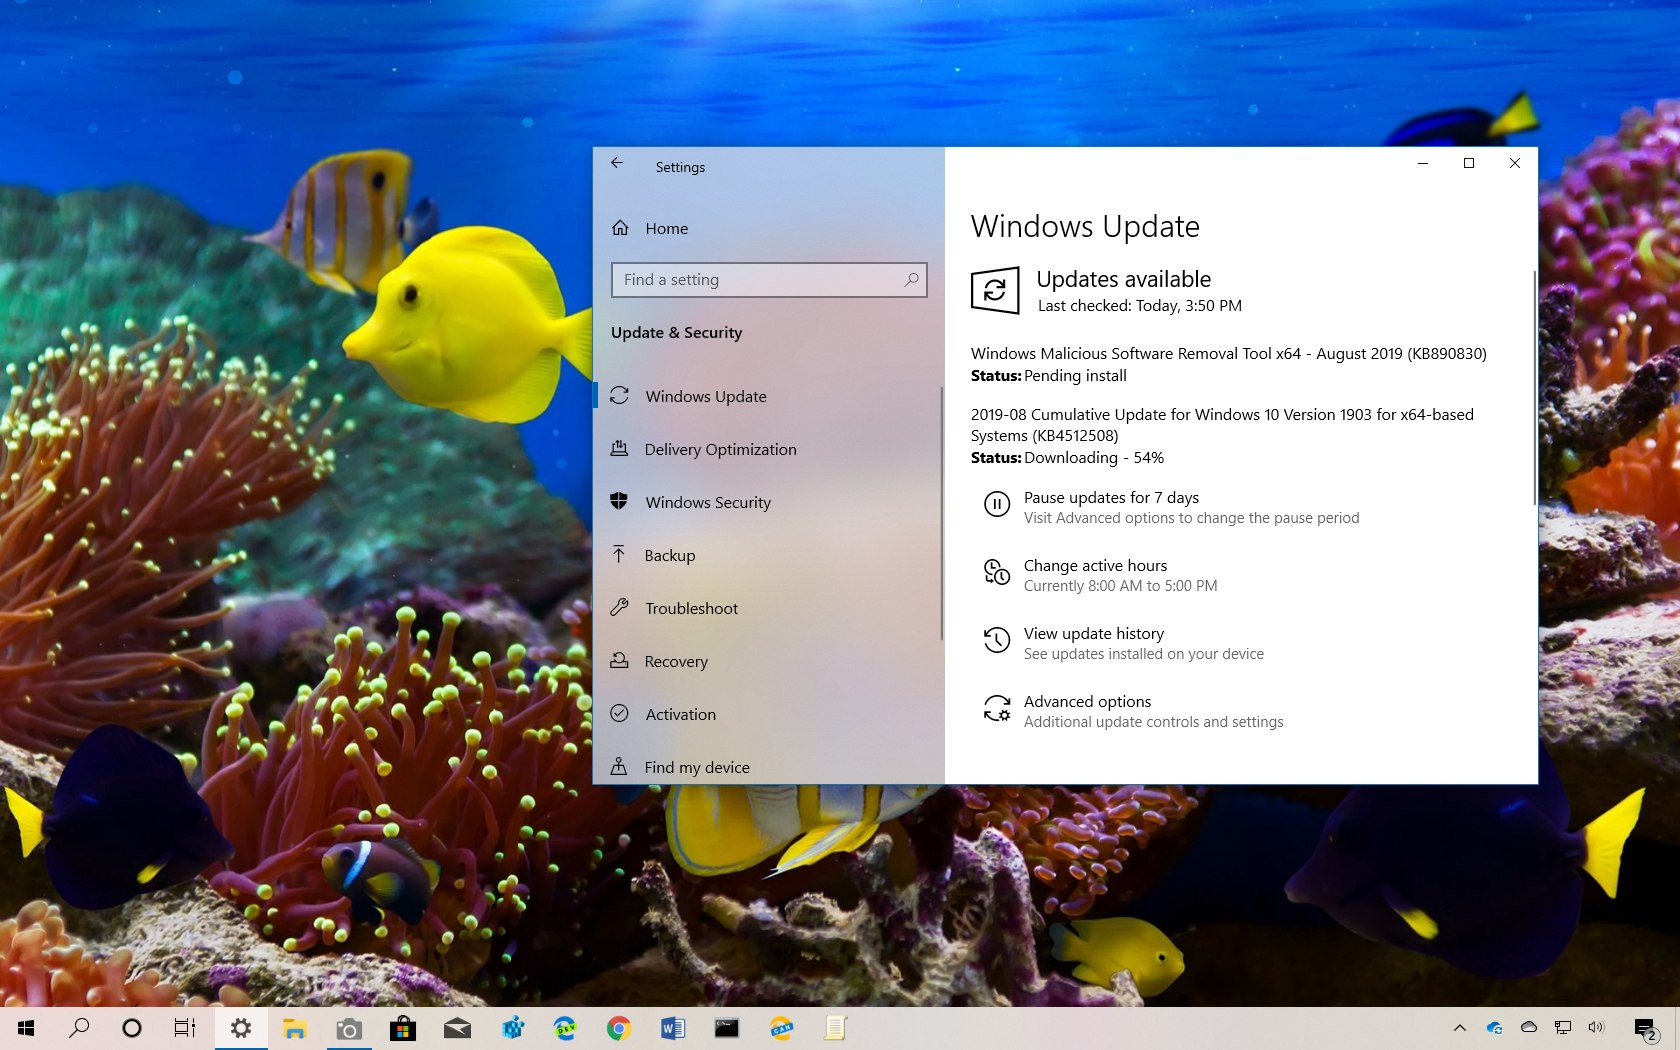 KB4512508 update for Windows 10 download